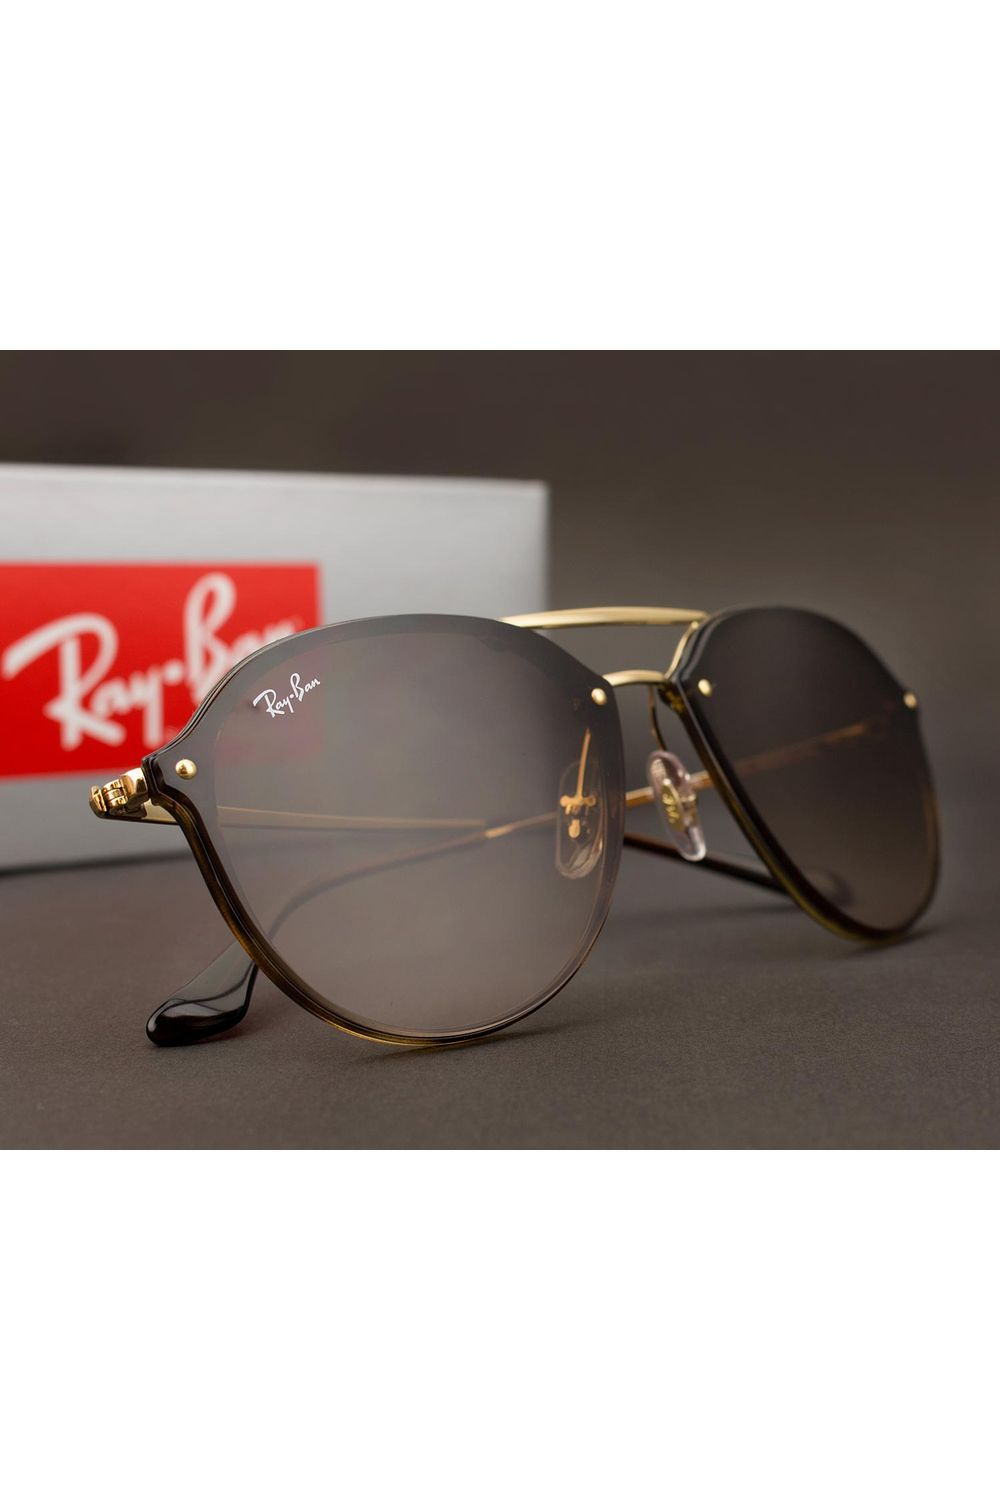 Óculos de Sol Ray Ban Blaze Double Bridge RB4292N 710 13-62 ... 1d27d6721e